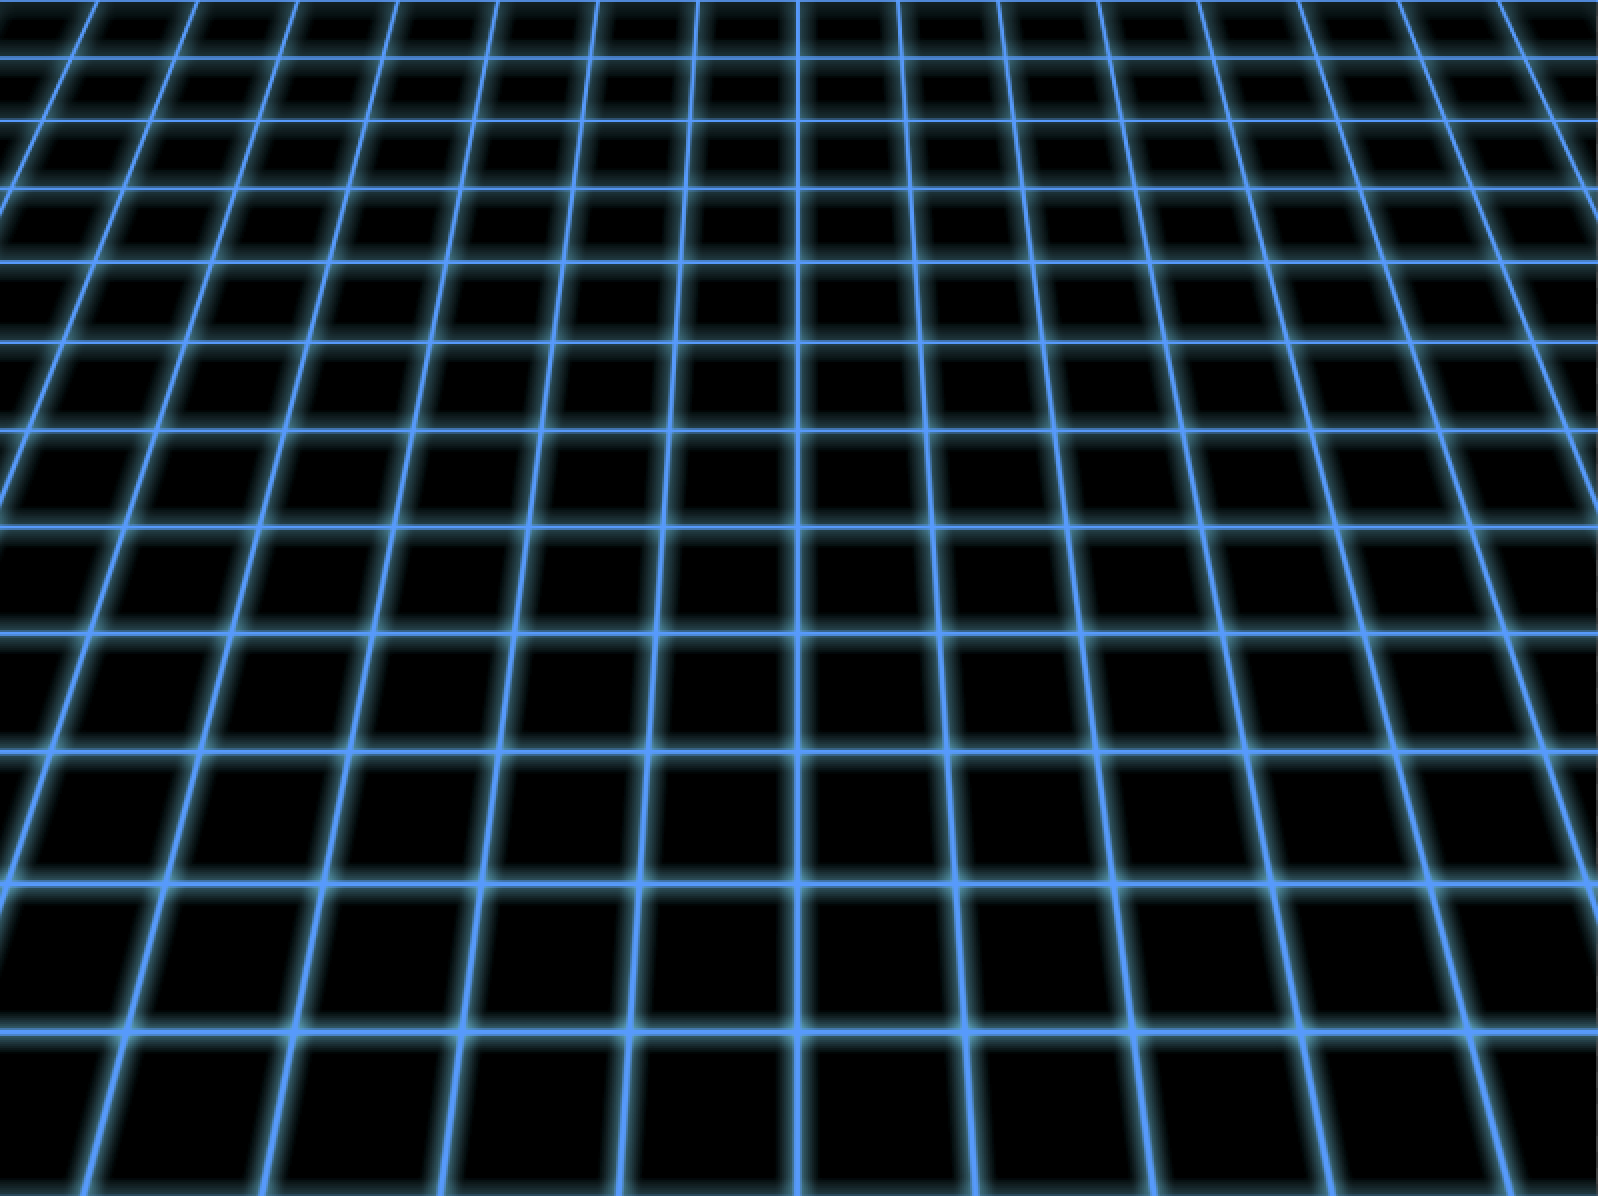 Tron Perspective Grid glowing lines Photoshop Tutorial - PhotoshopCAFE